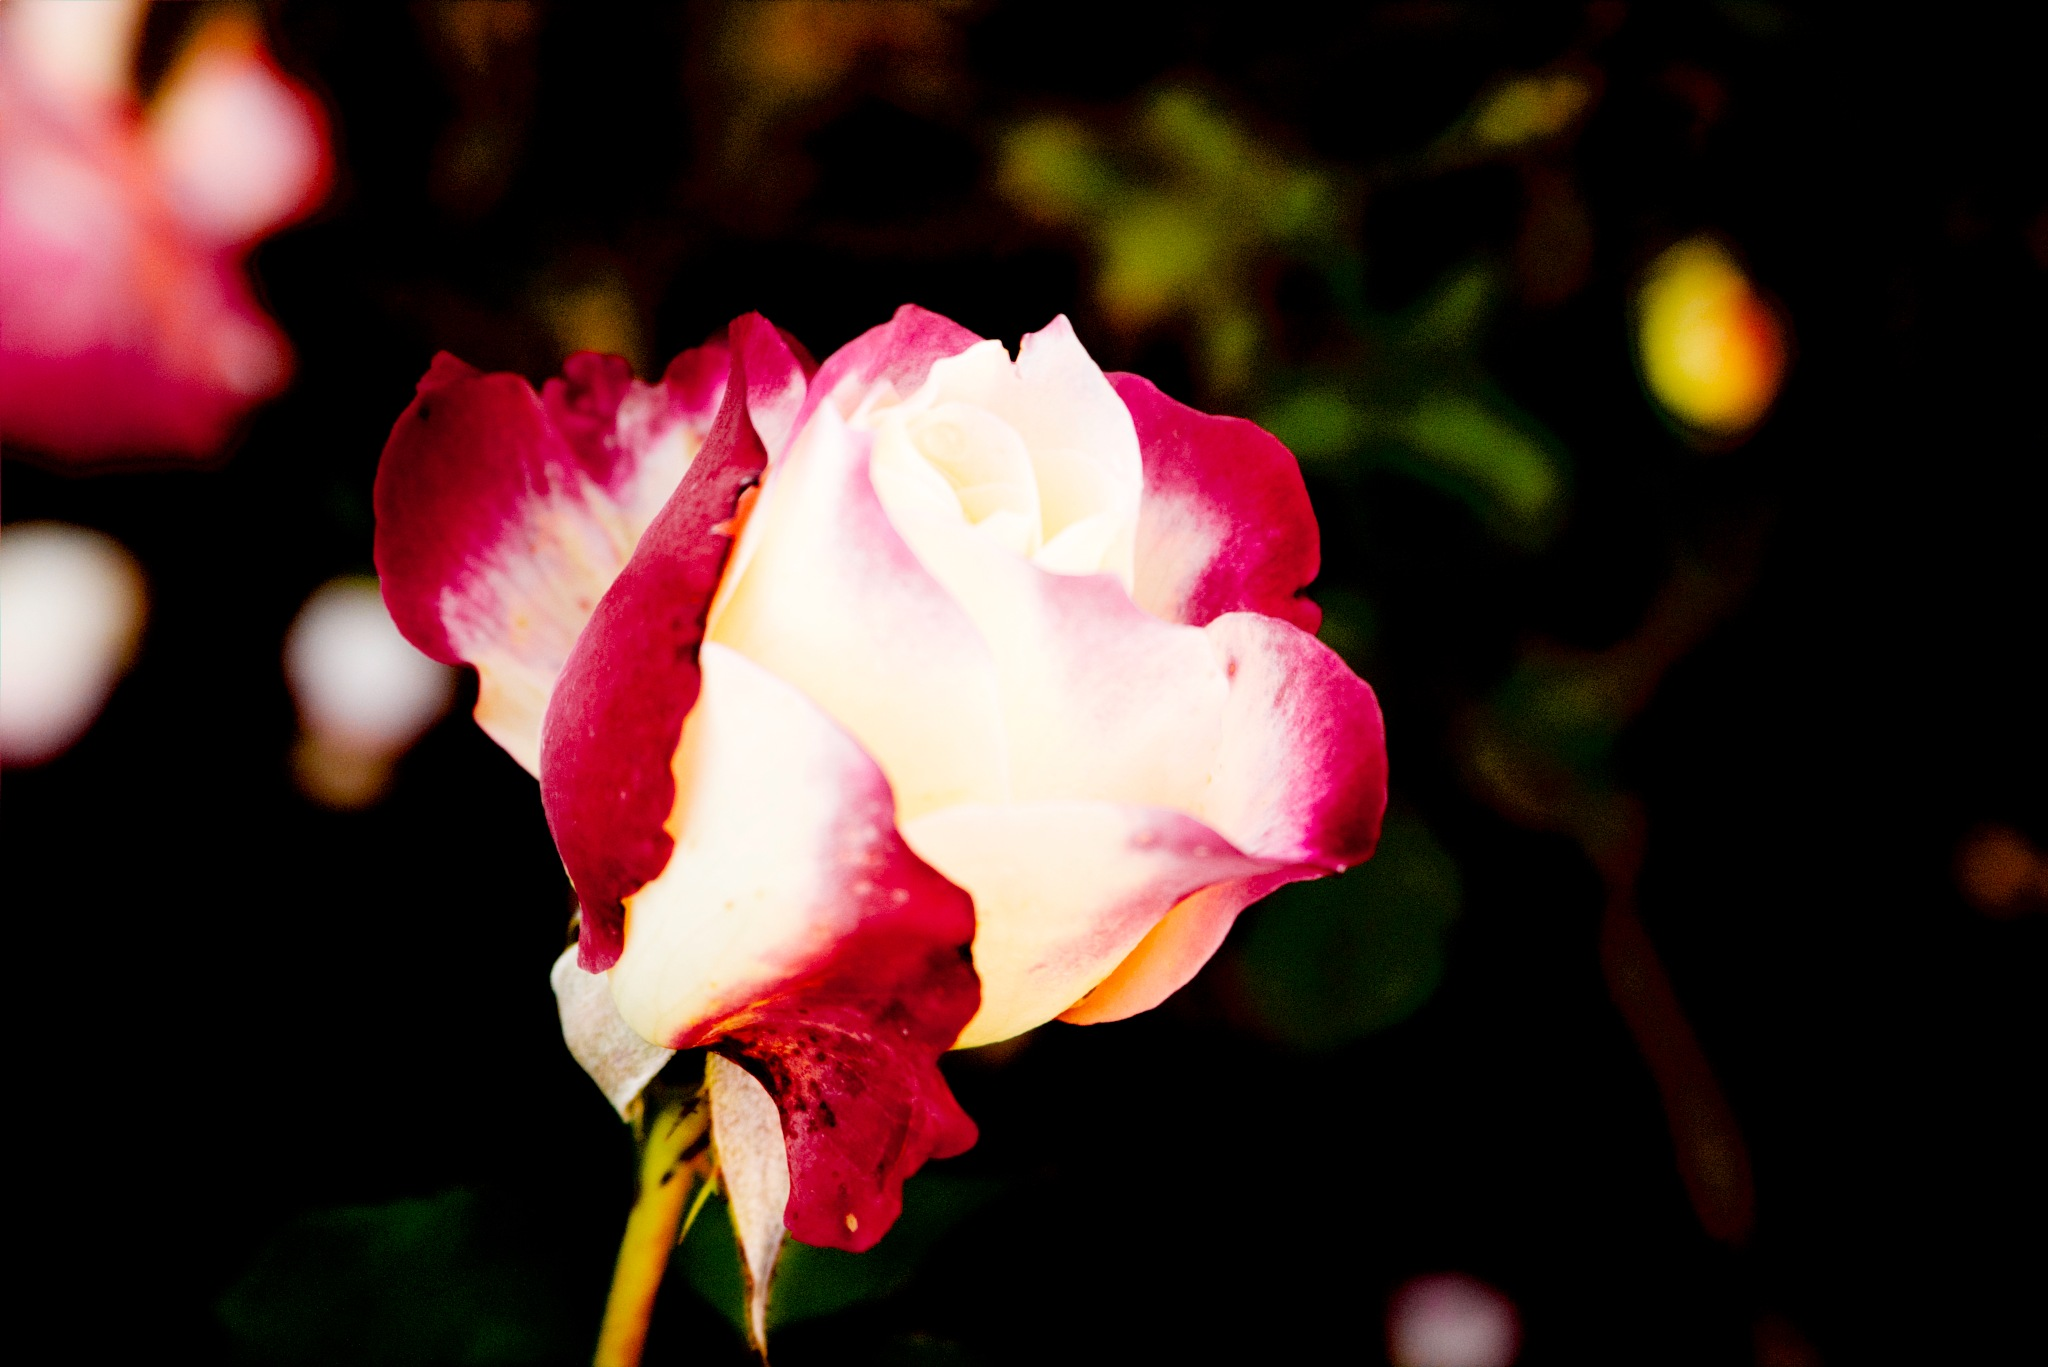 Rose (CR2) by zvnktomasevic